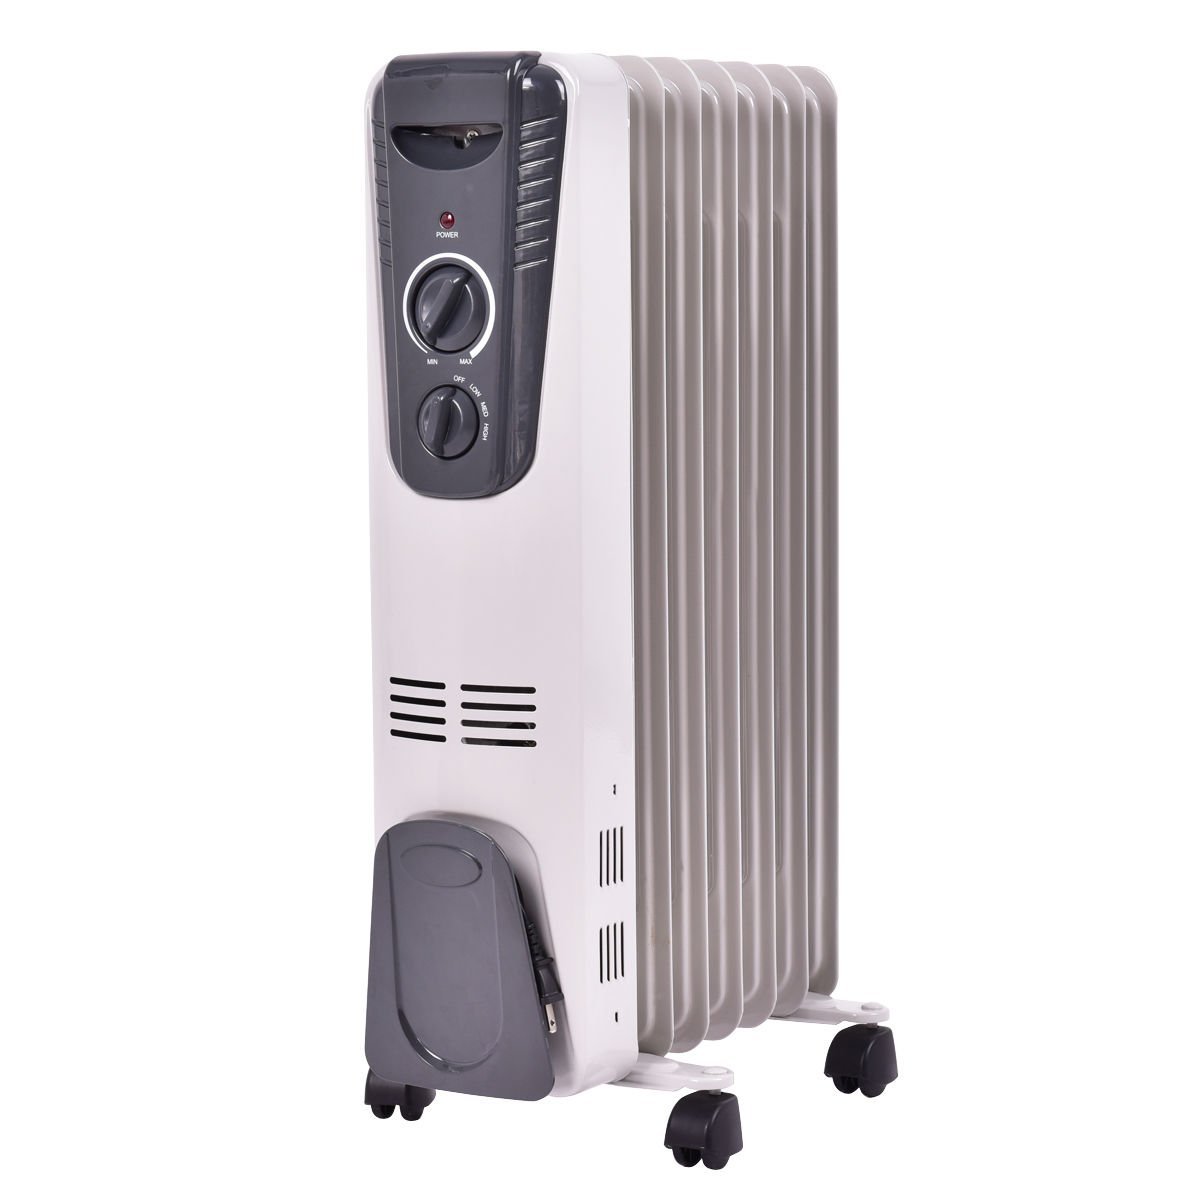 TANGKULA Electric Oil Filled Radiator Heater Portable Home Room Radiant Heater (White 1500W)